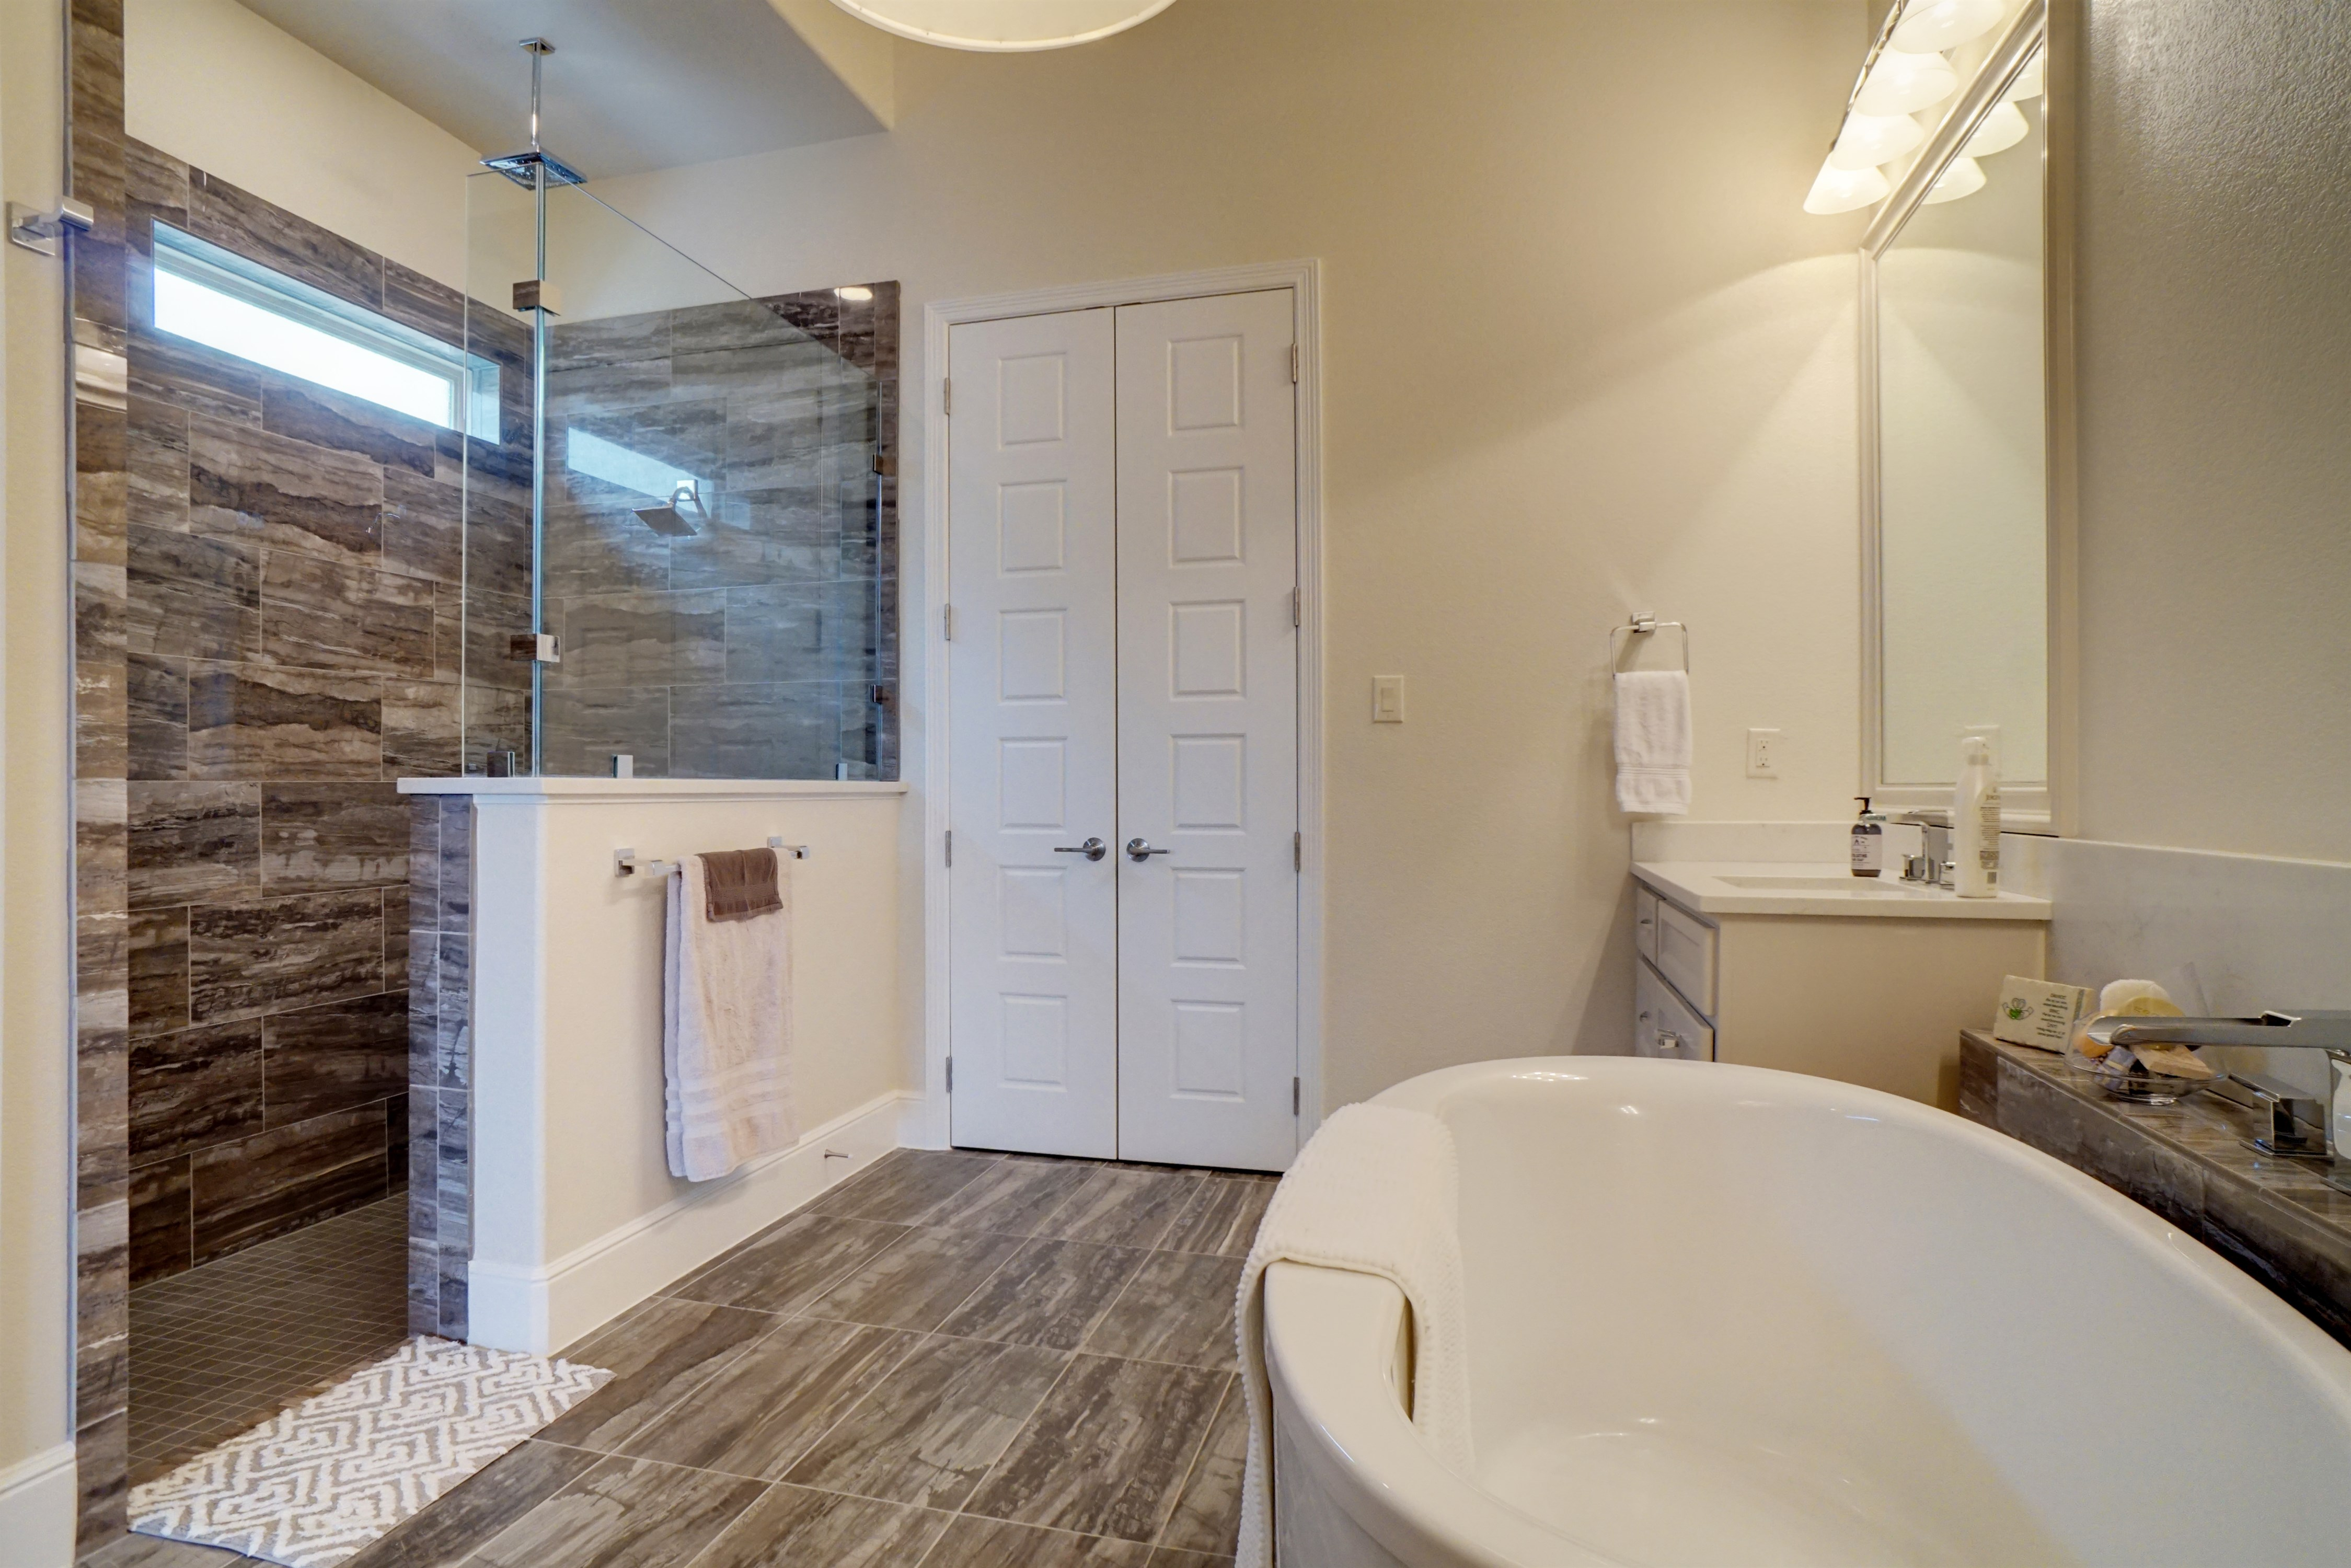 Houston Bathroom Remodeling Statewide Remodeling Houston Reviews Cabinetry At 100